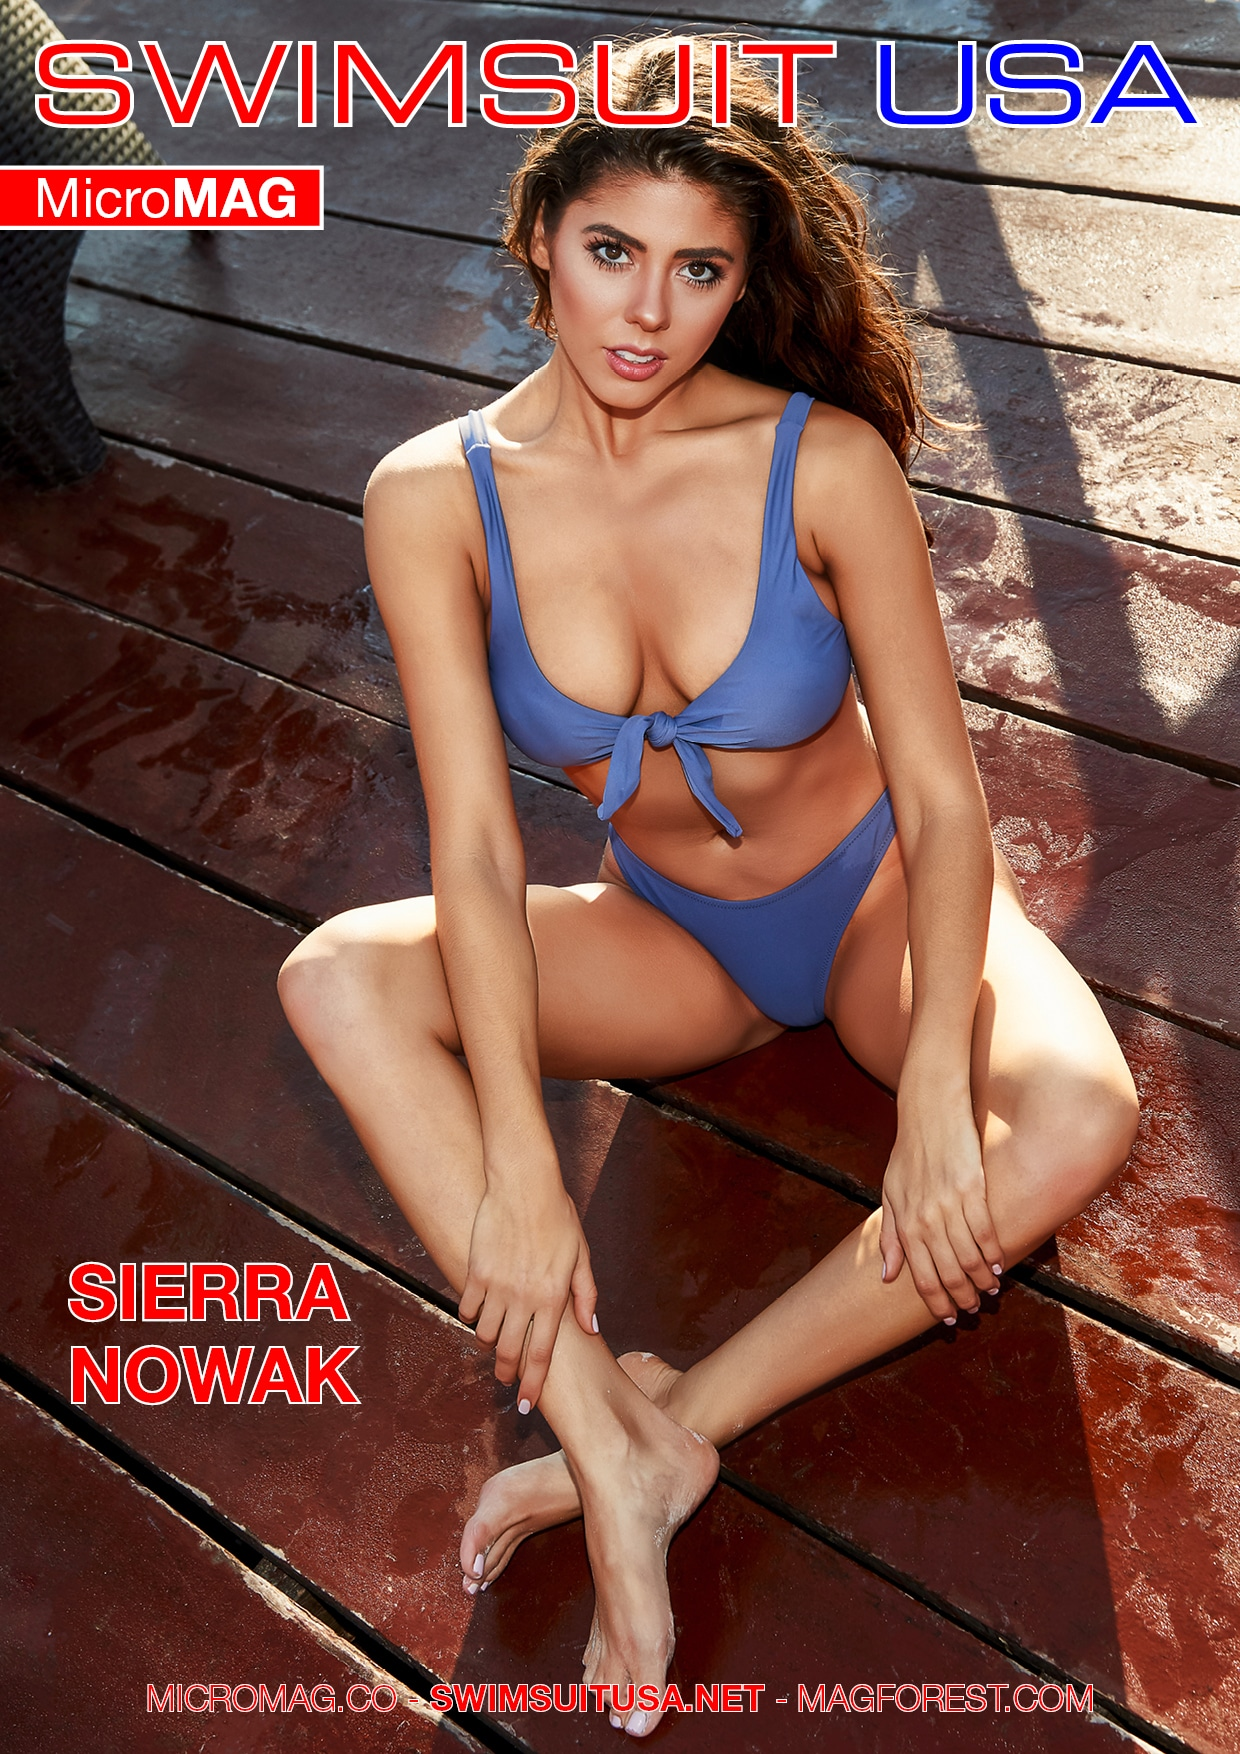 Swimsuit USA MicroMAG - Lindsey Sterling - Issue 3 4